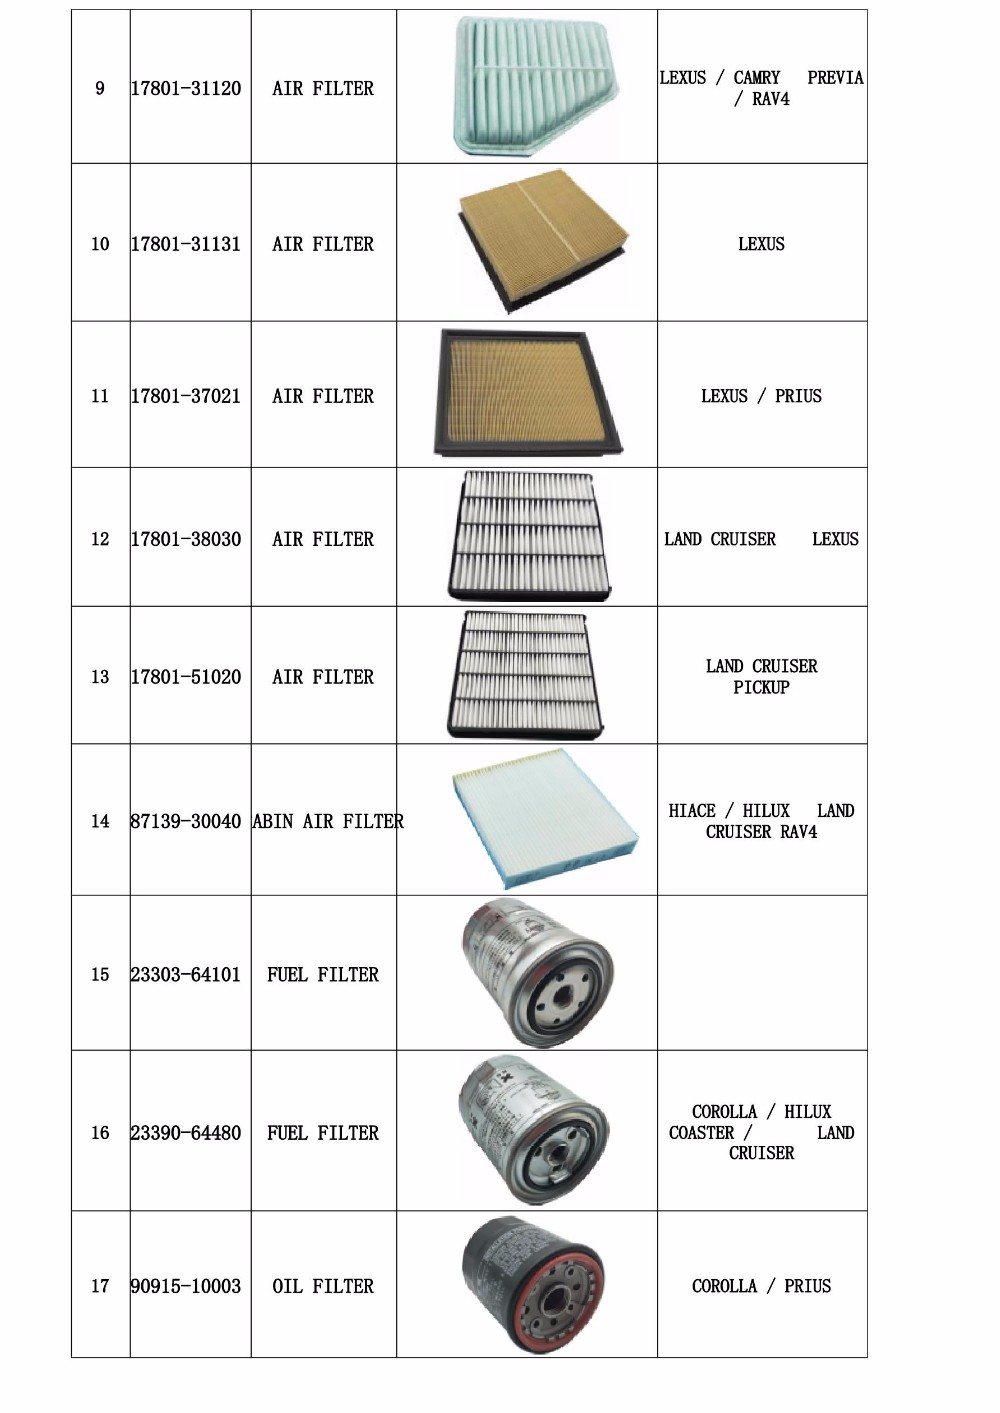 High Quality Diesel Fuel Filter Auto Parts Oem No 23390 Yzza2 For Corolla Other Products